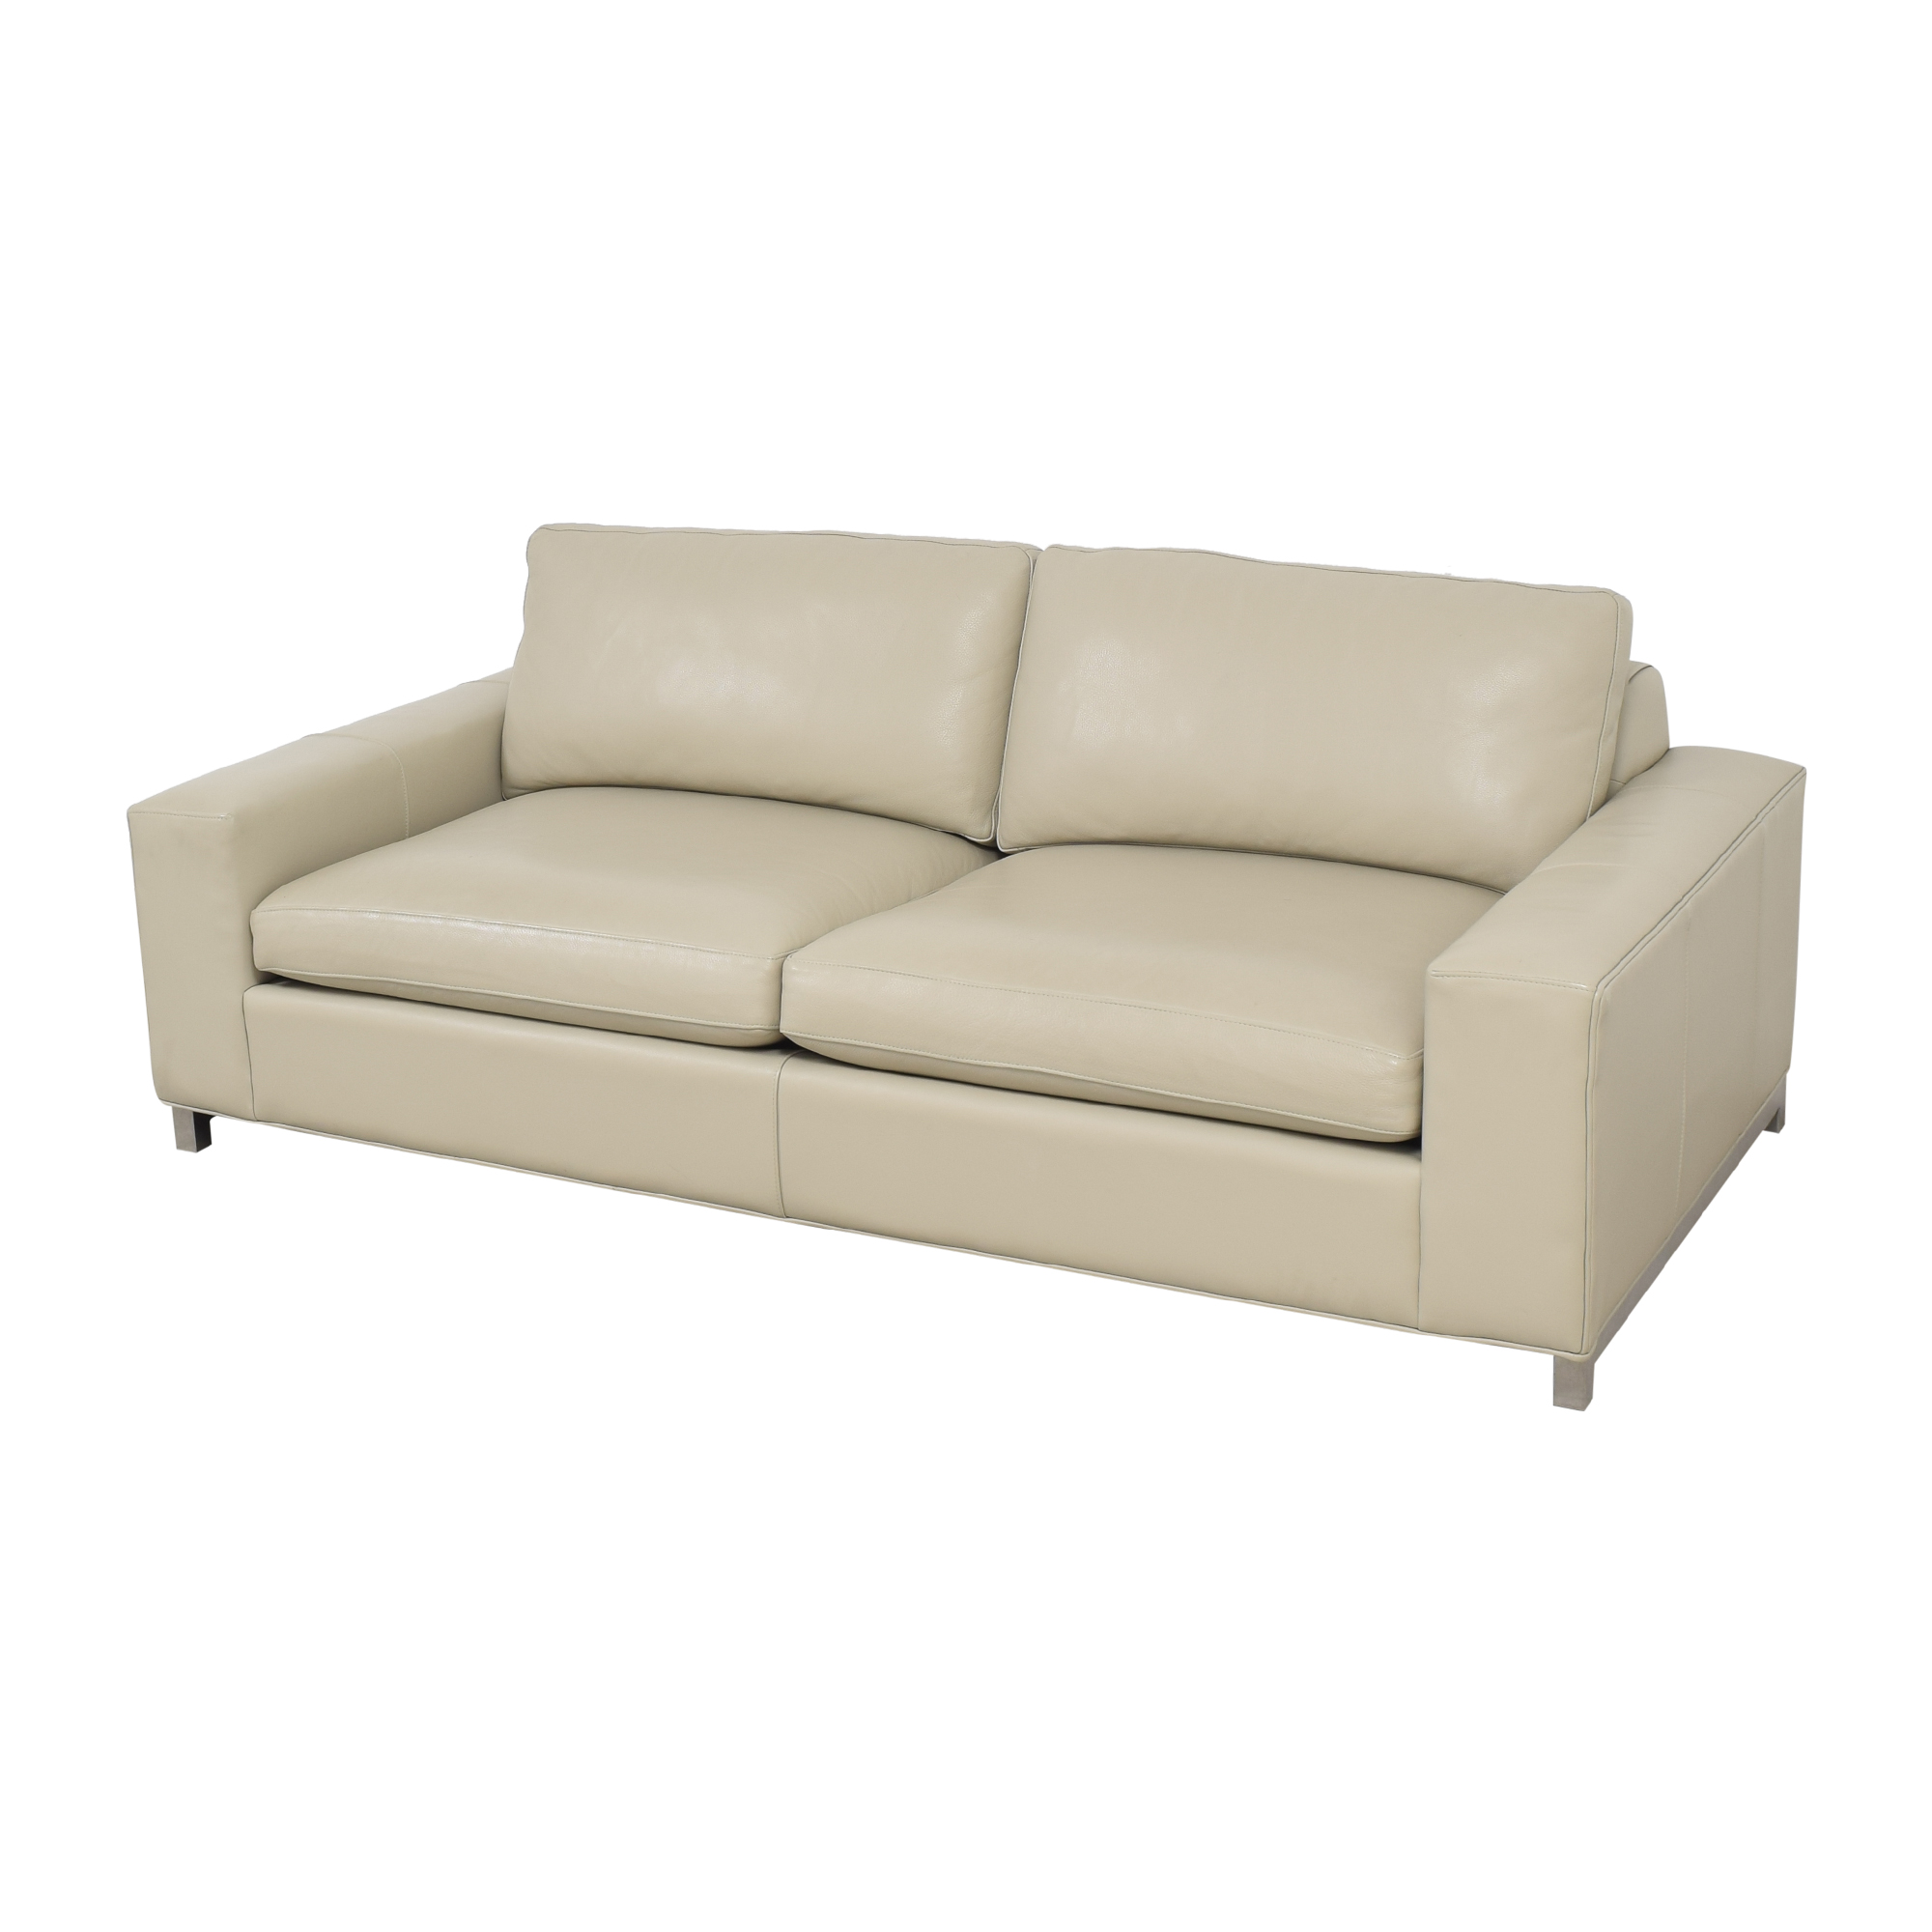 buy Room & Board Klein Sofa Room & Board